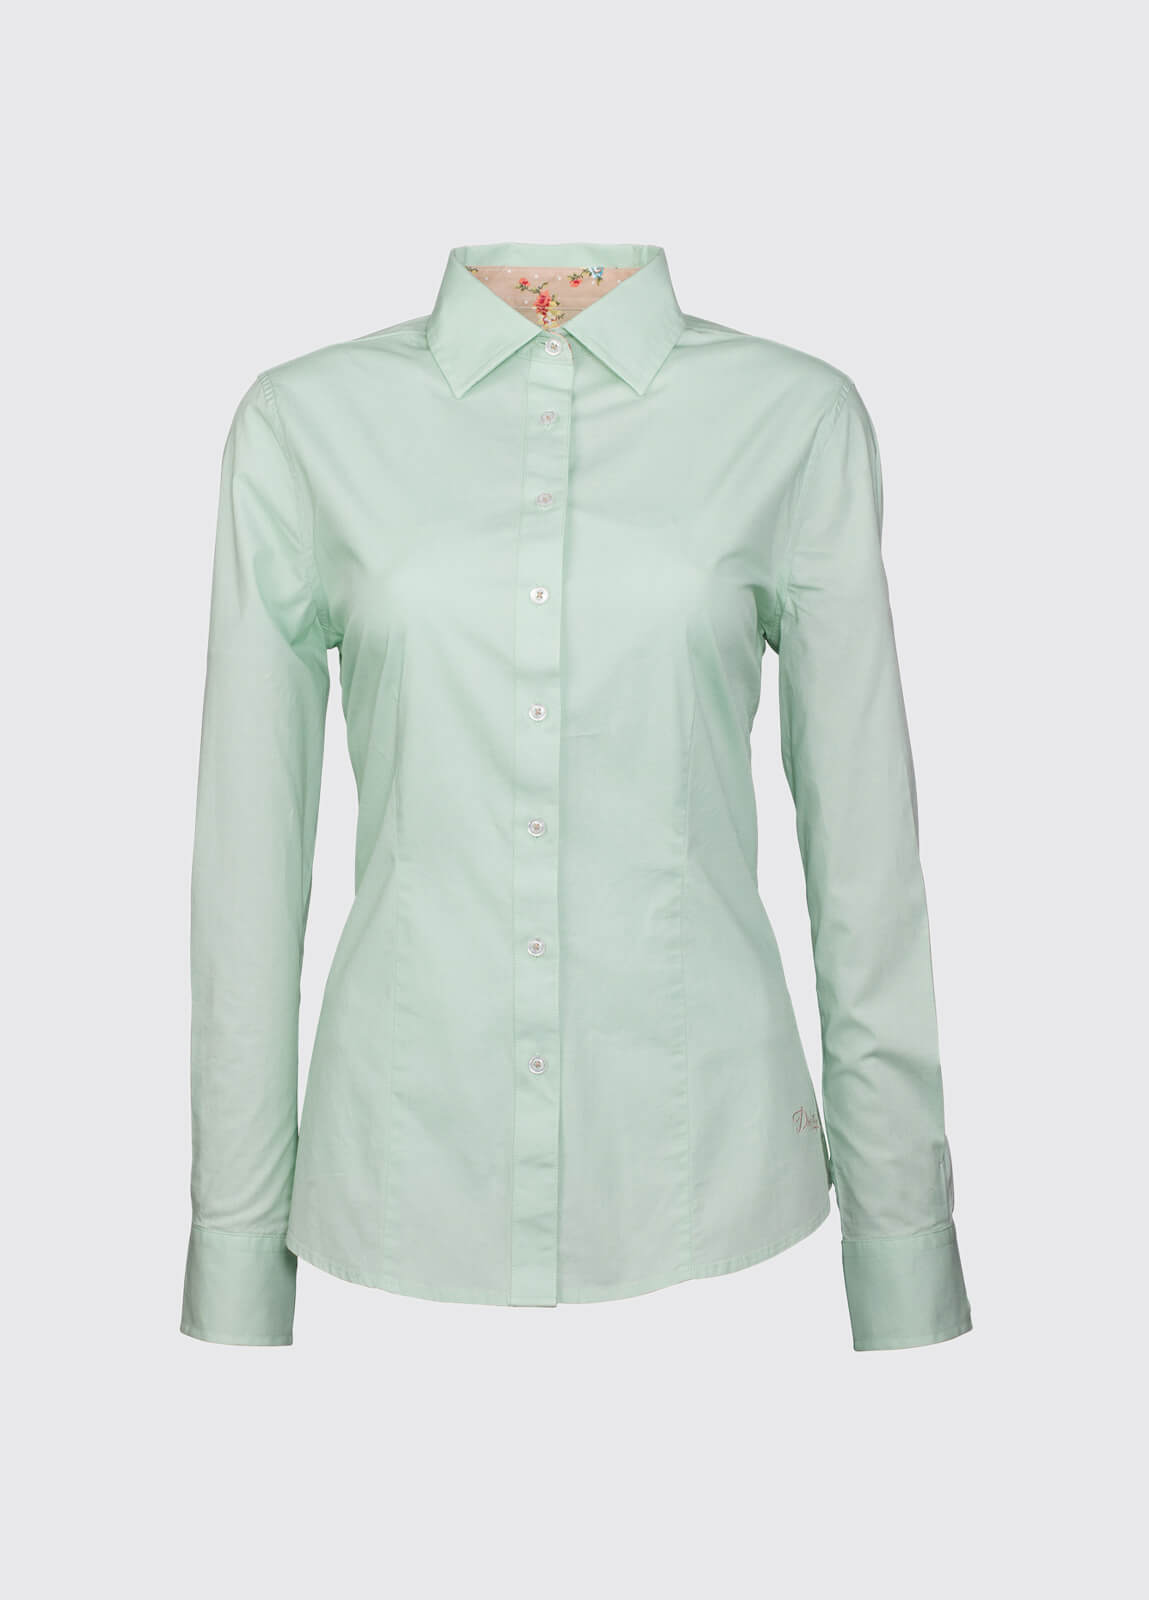 Petunia Floral Trim Shirt - Mint